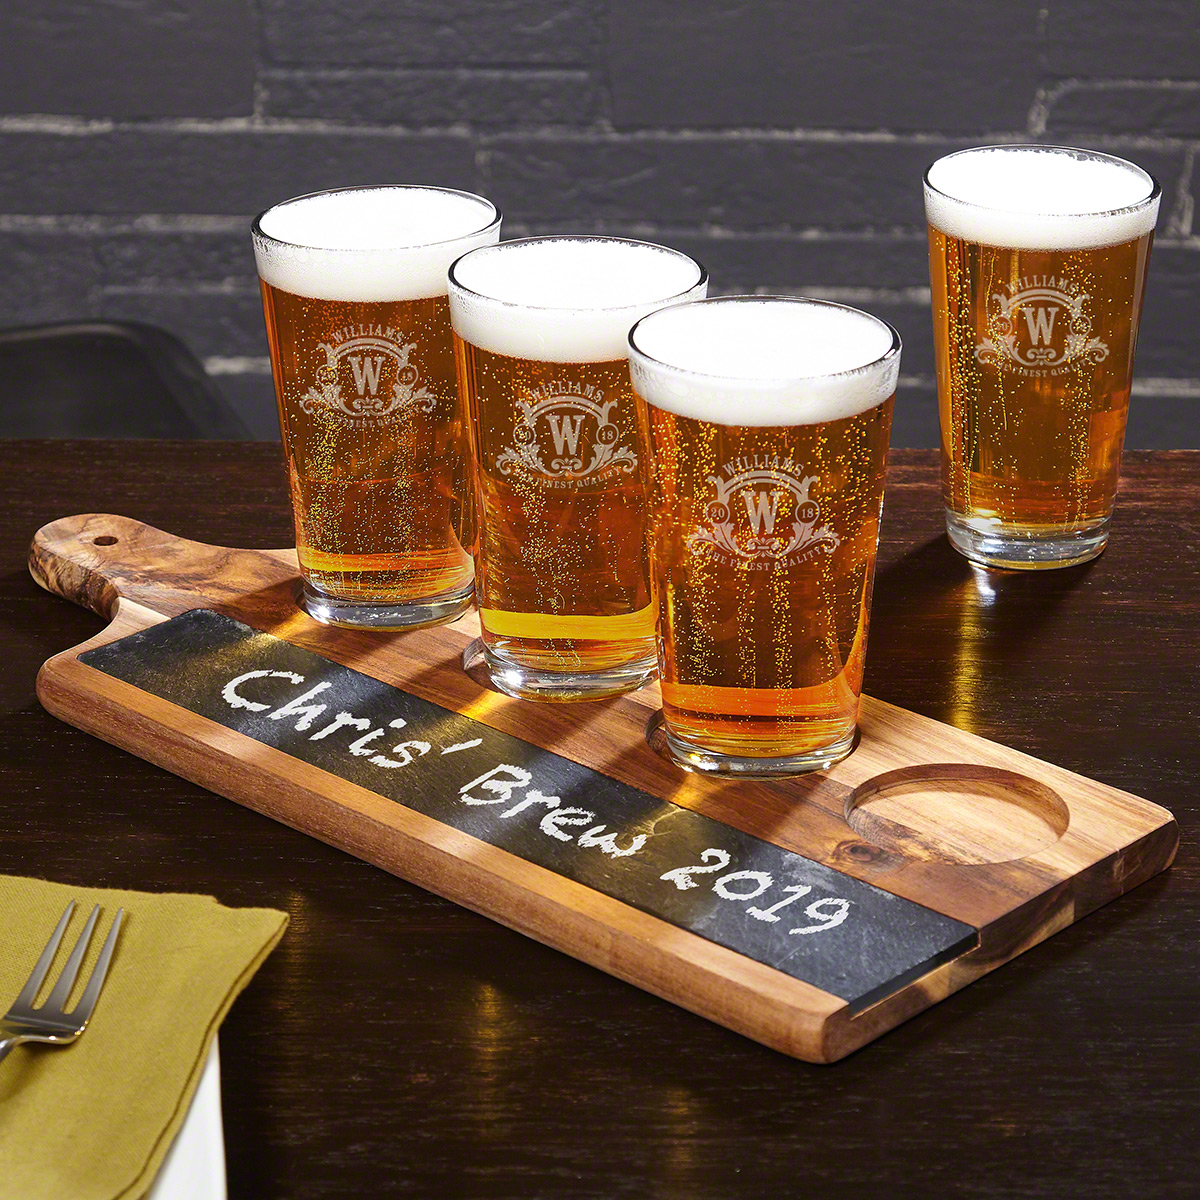 Westbrook-Monogram-Engraved-Pint-Glasses-with-Chalkboard-Serving-Tray